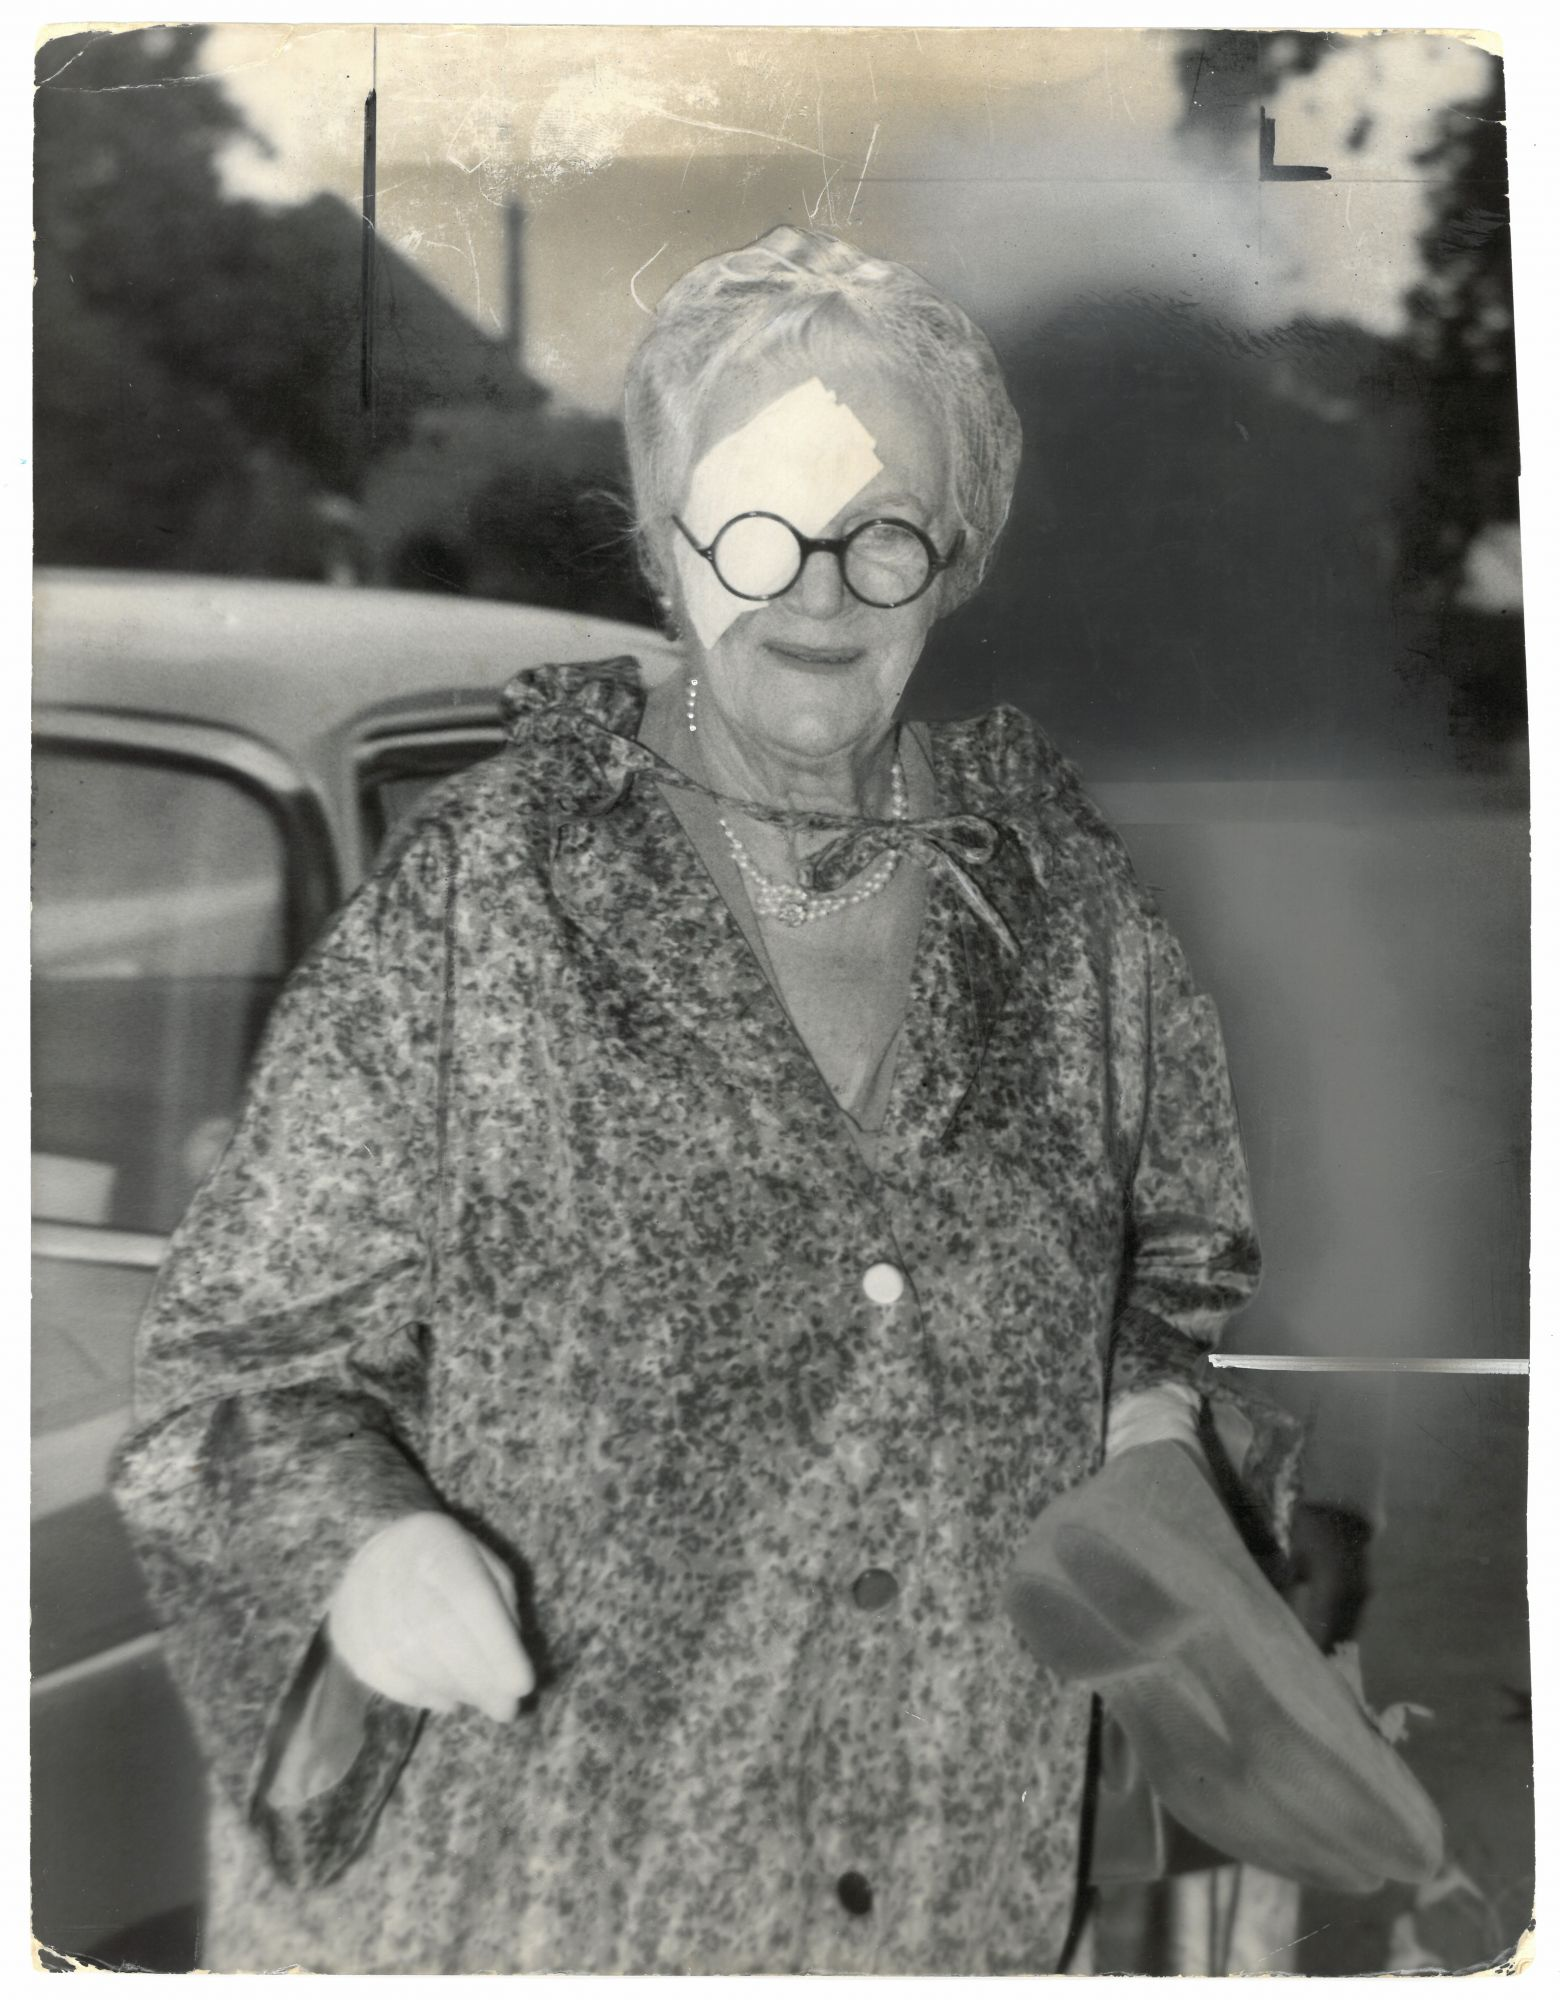 An Original Press Photo Of Lady Clementine Churchill Wearing An Eyepatch Published On 1 September 1959 On Churchill Book Collector